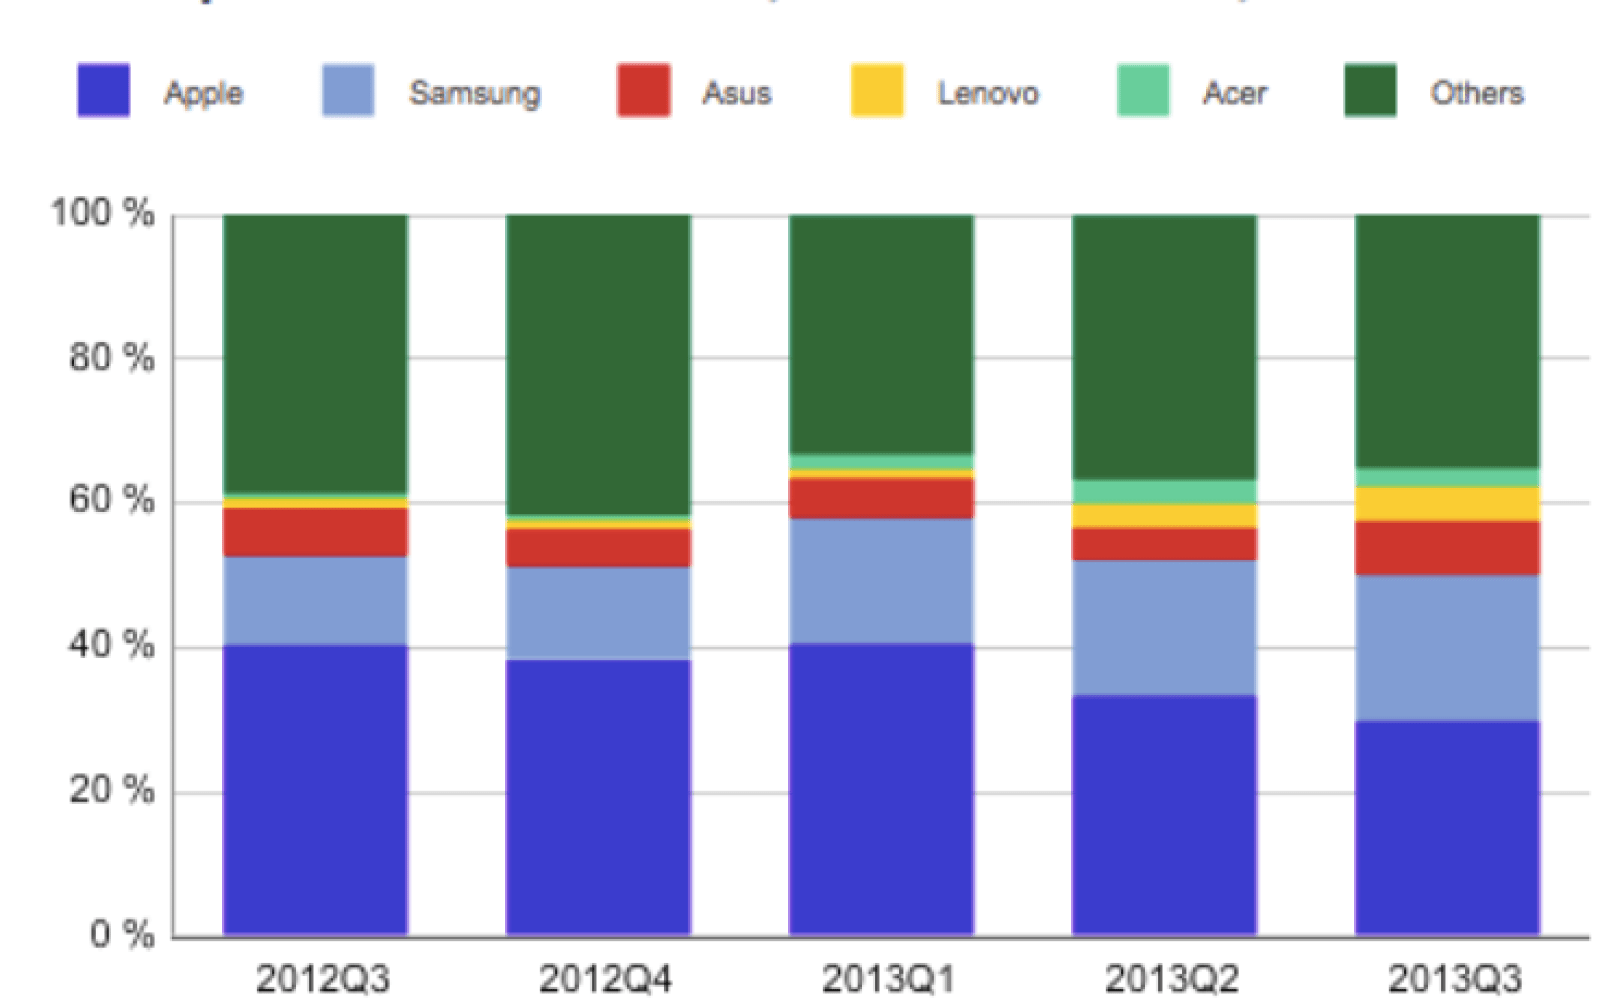 Android tablet revenue overtakes iPad for first time, but probably not for long